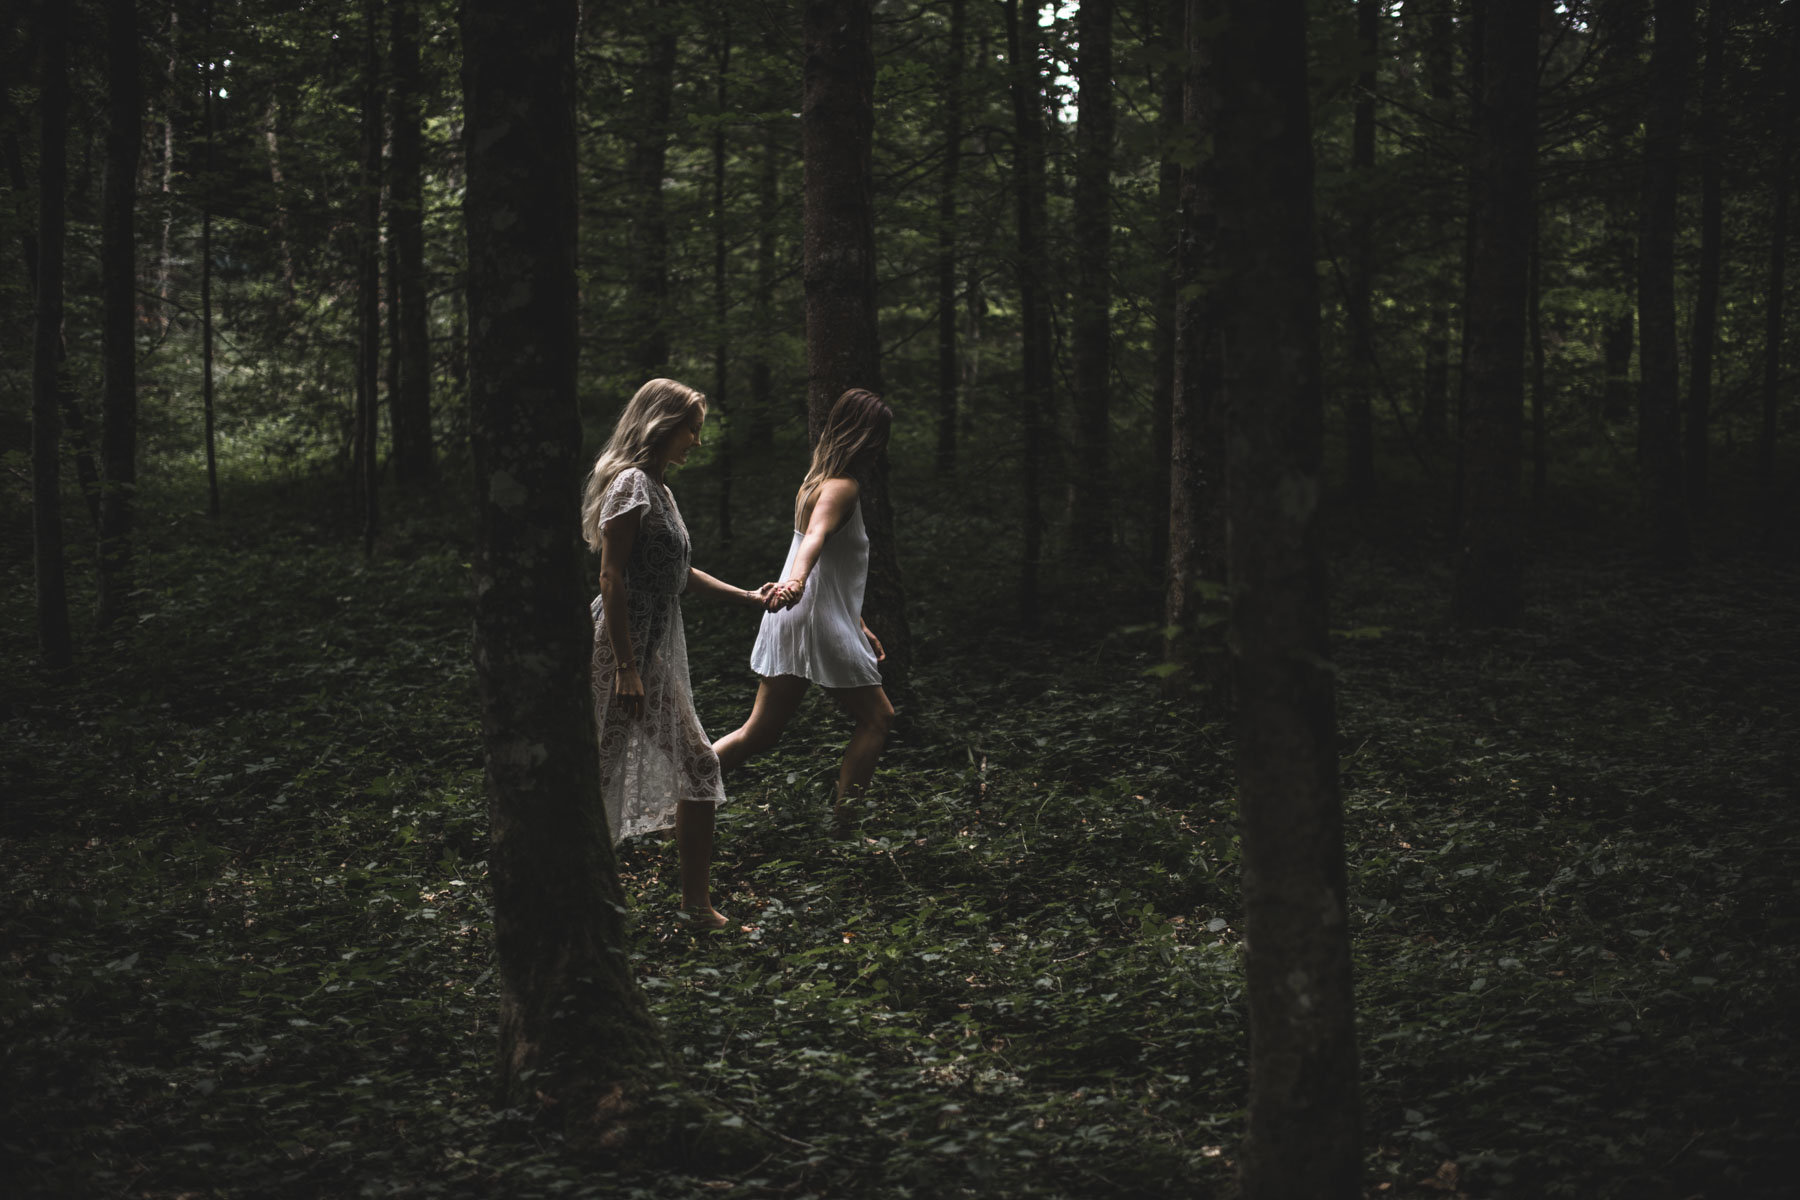 sisters_in_the_woods_03.jpg